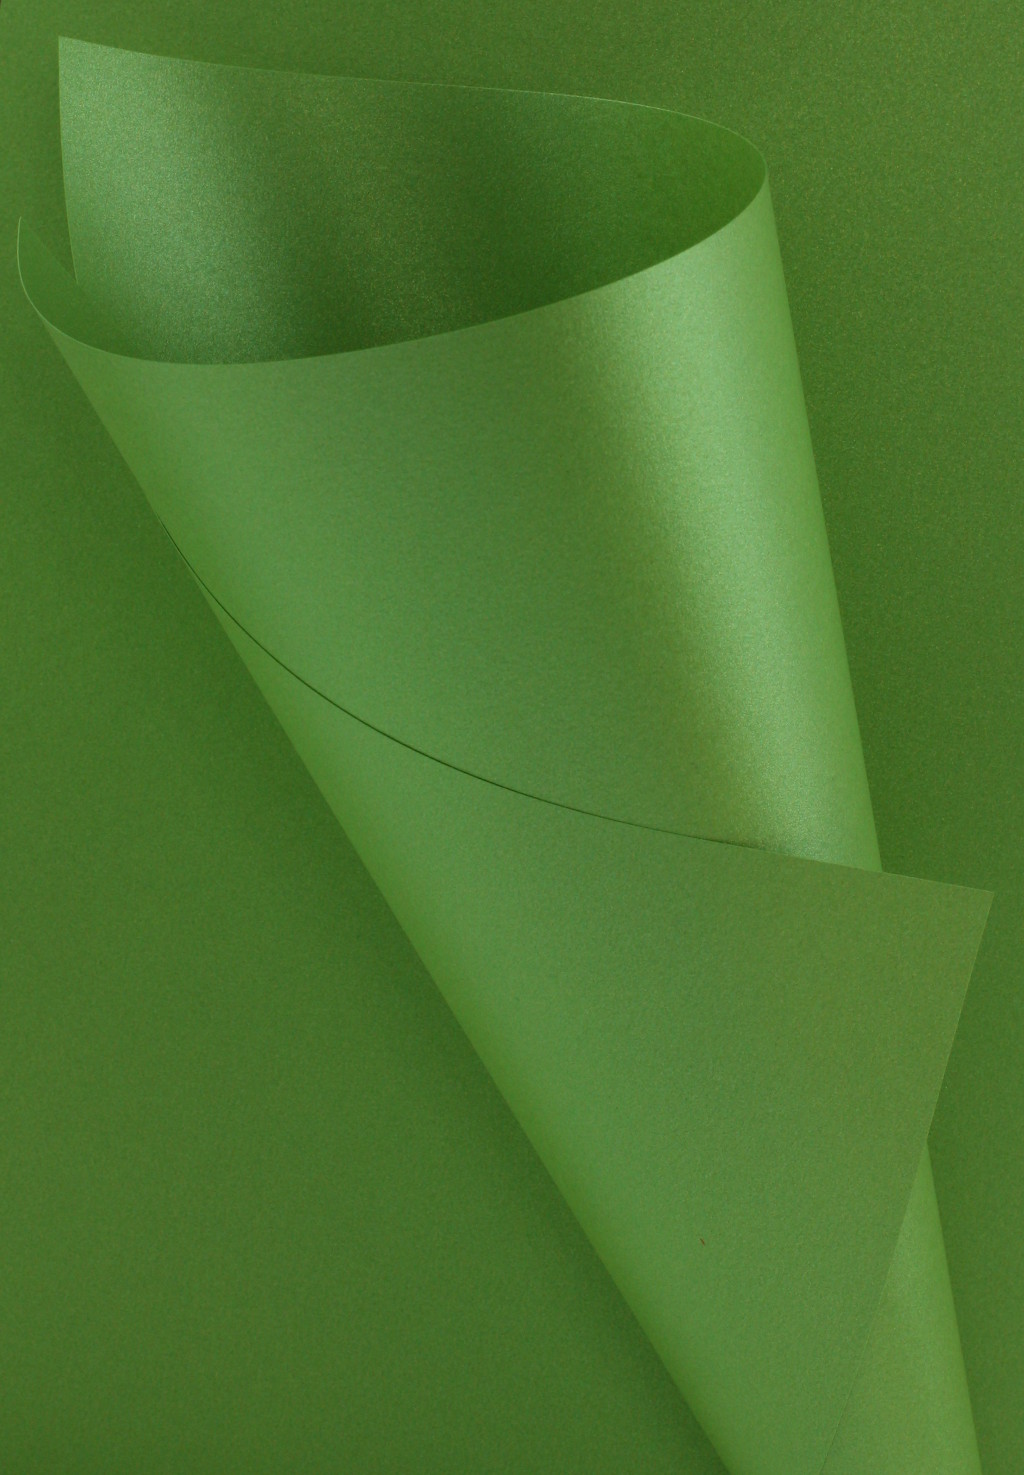 Pearlescent Green Paper 120gsm